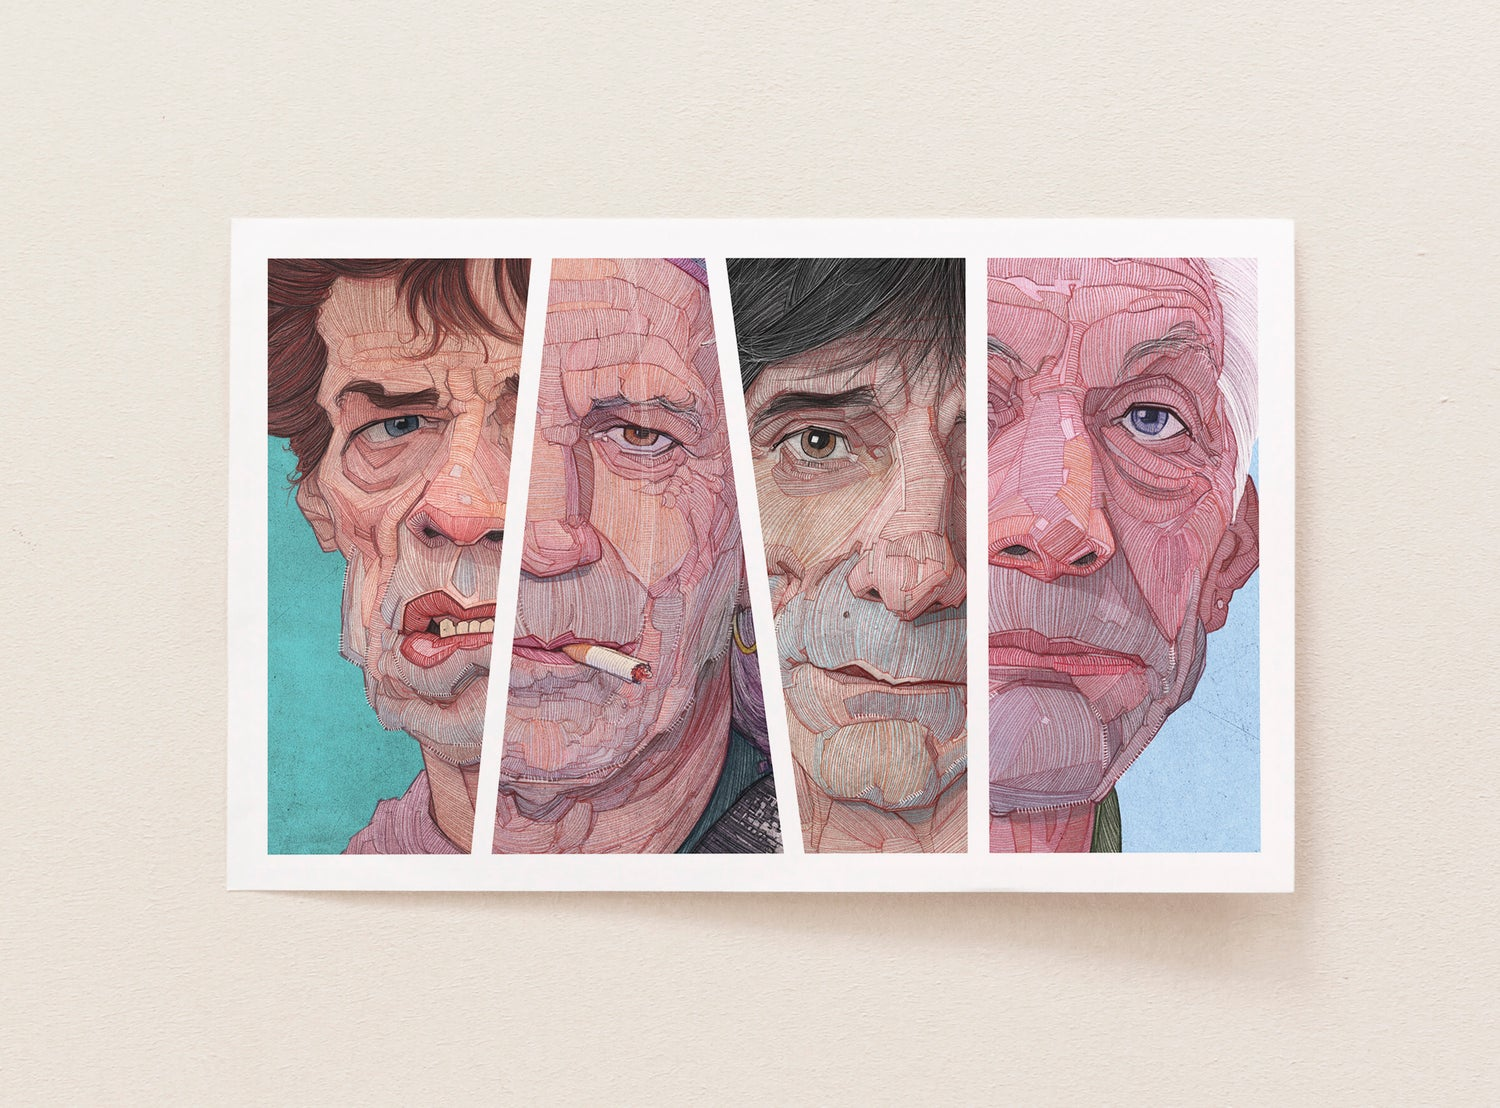 Image of The Rolling Stones illustration